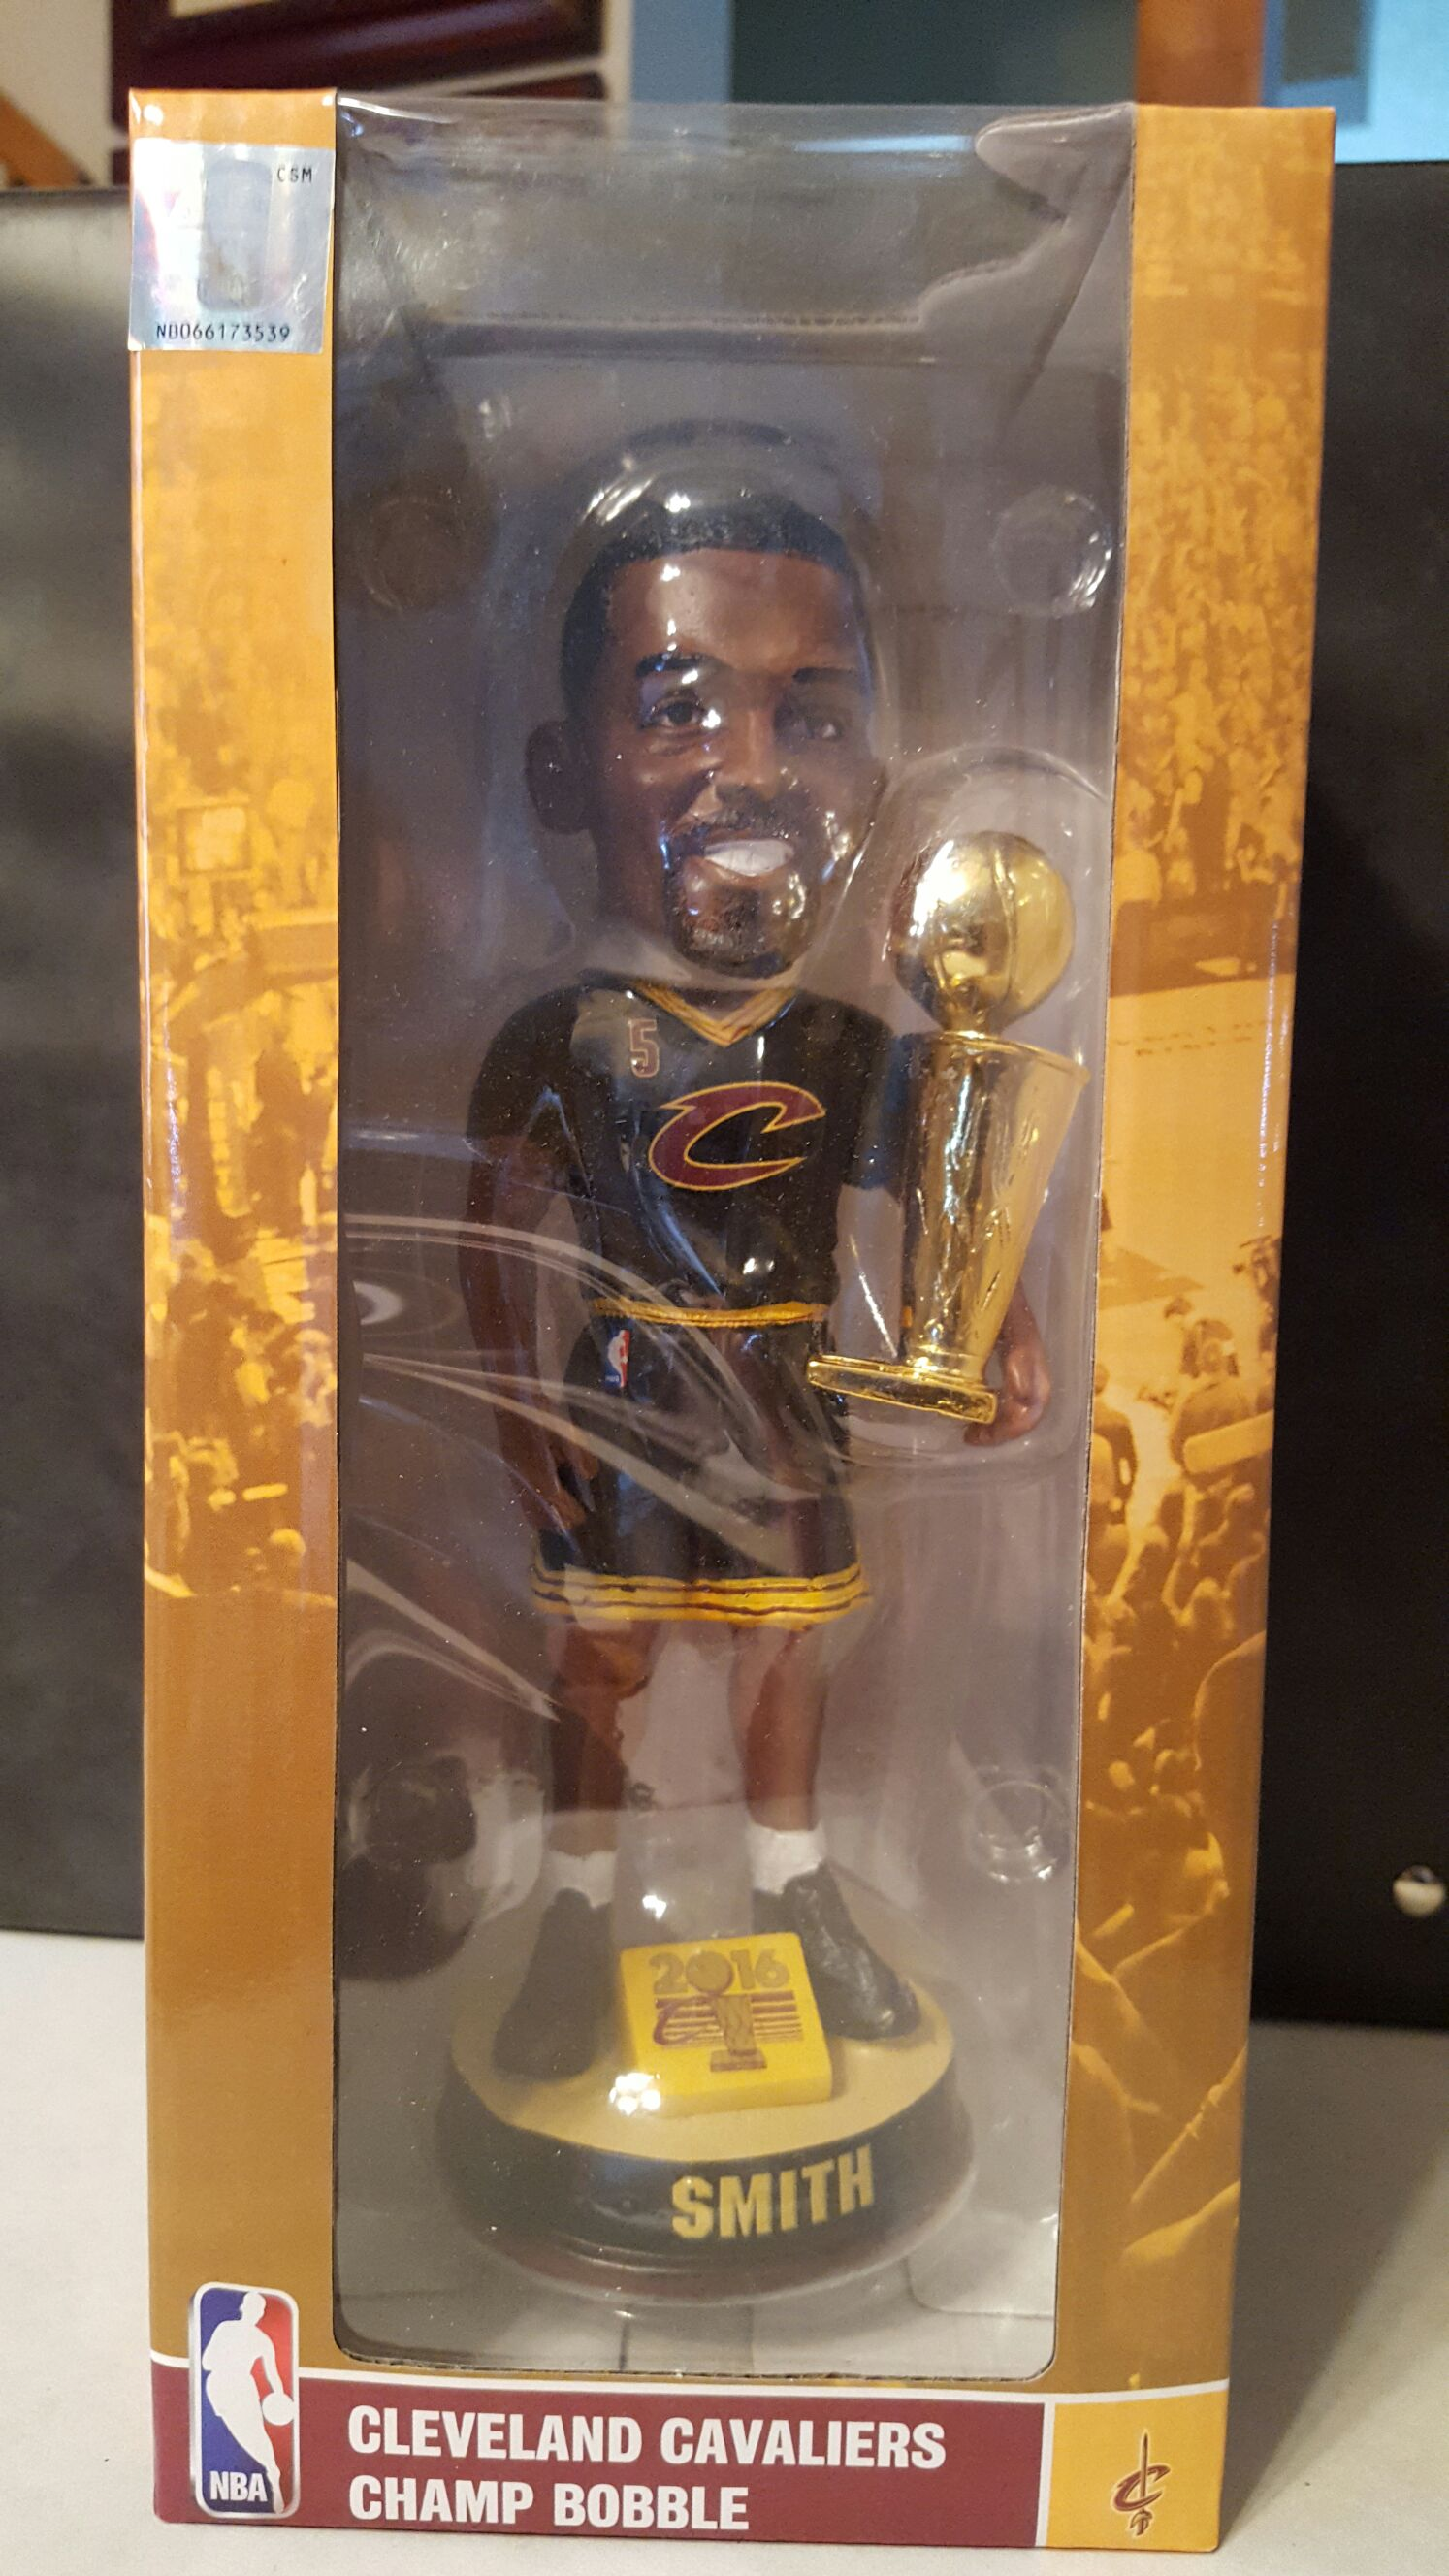 J.R. Smith Bobblehead - Basketball (2016) back image (back cover, second image)